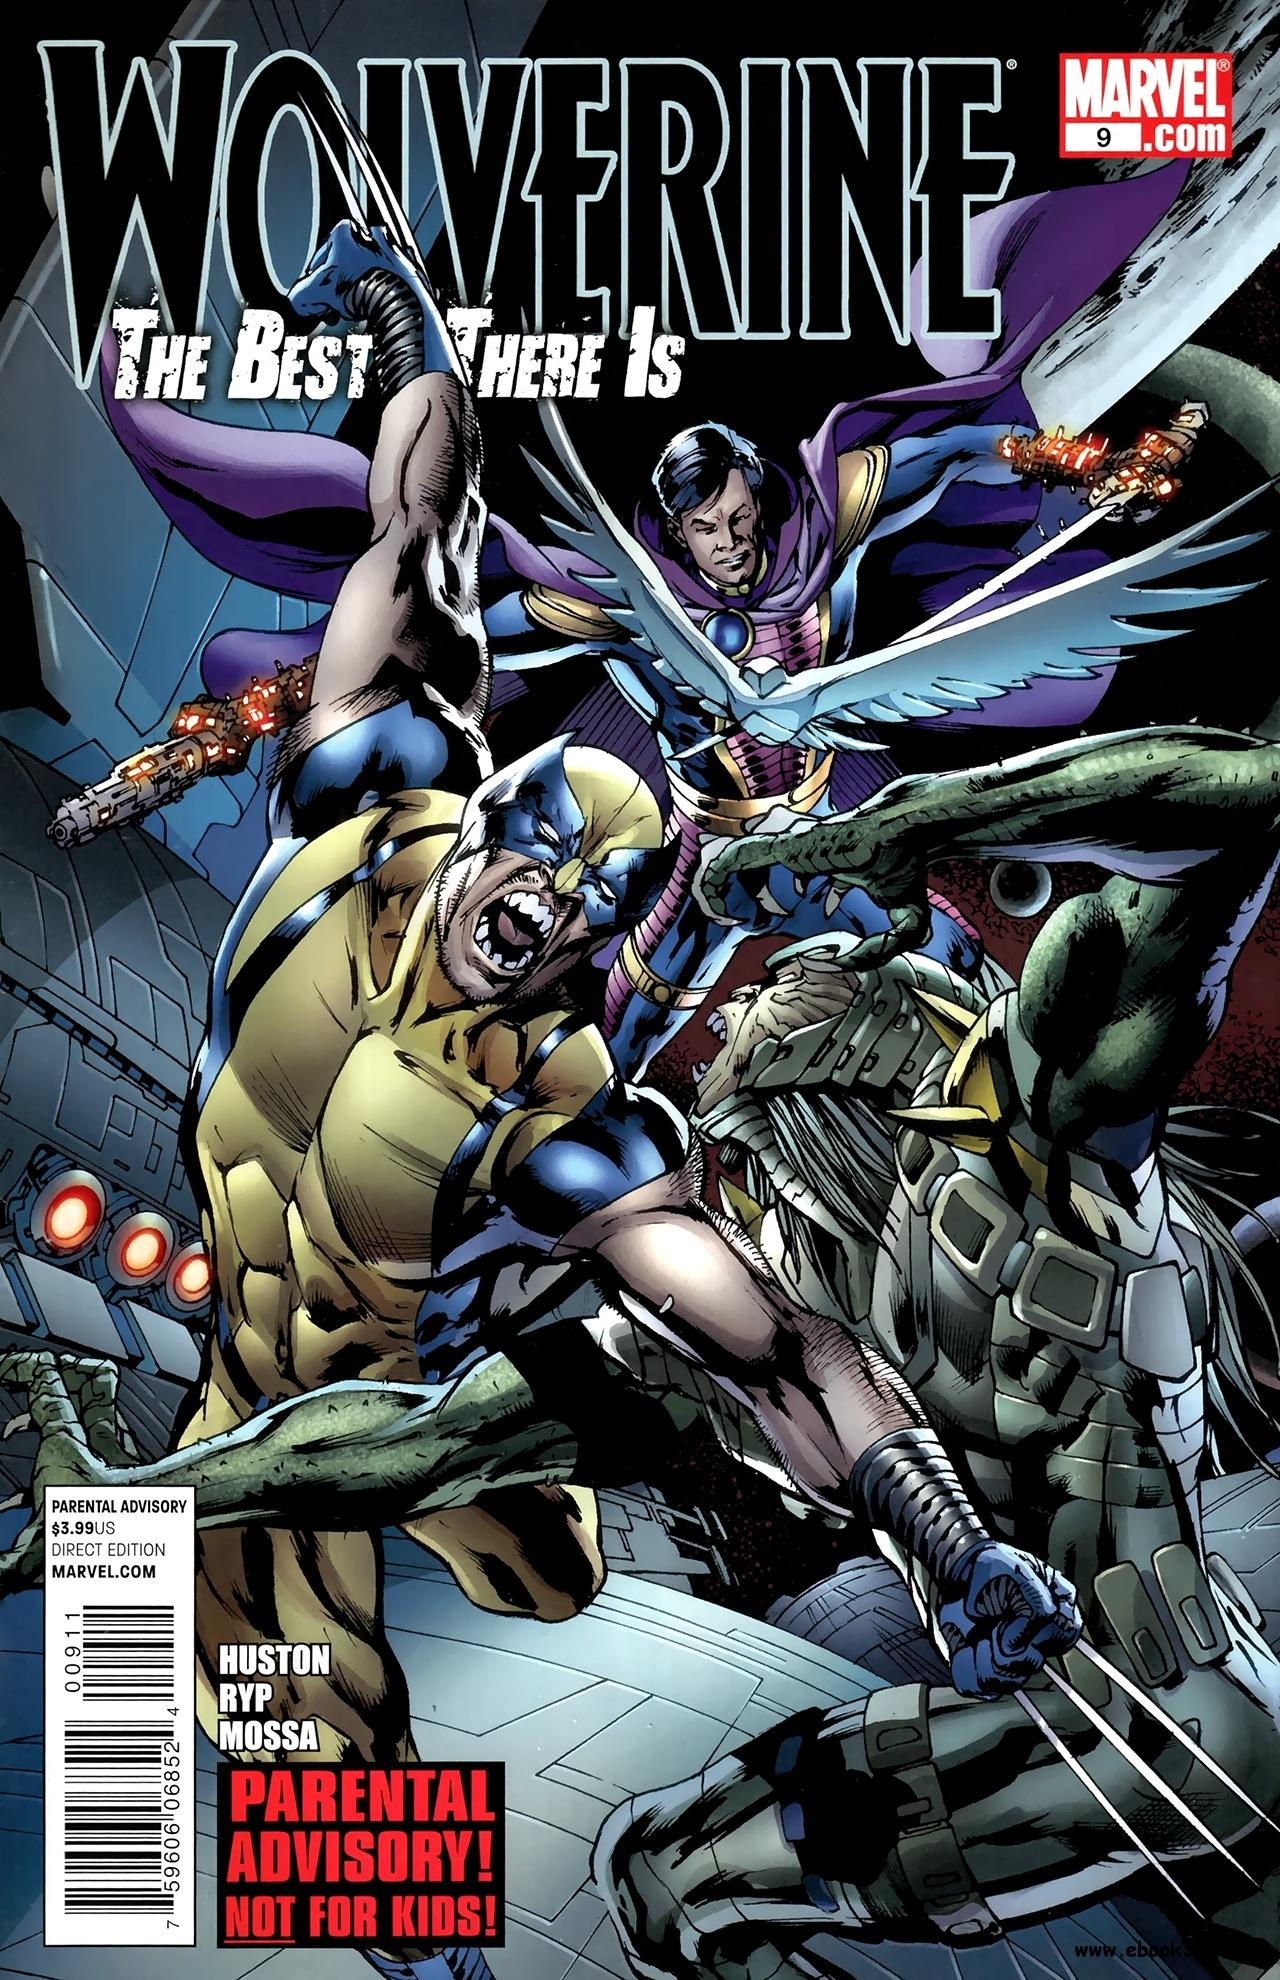 Wolverine - The Best There Is #9 (2011) free download